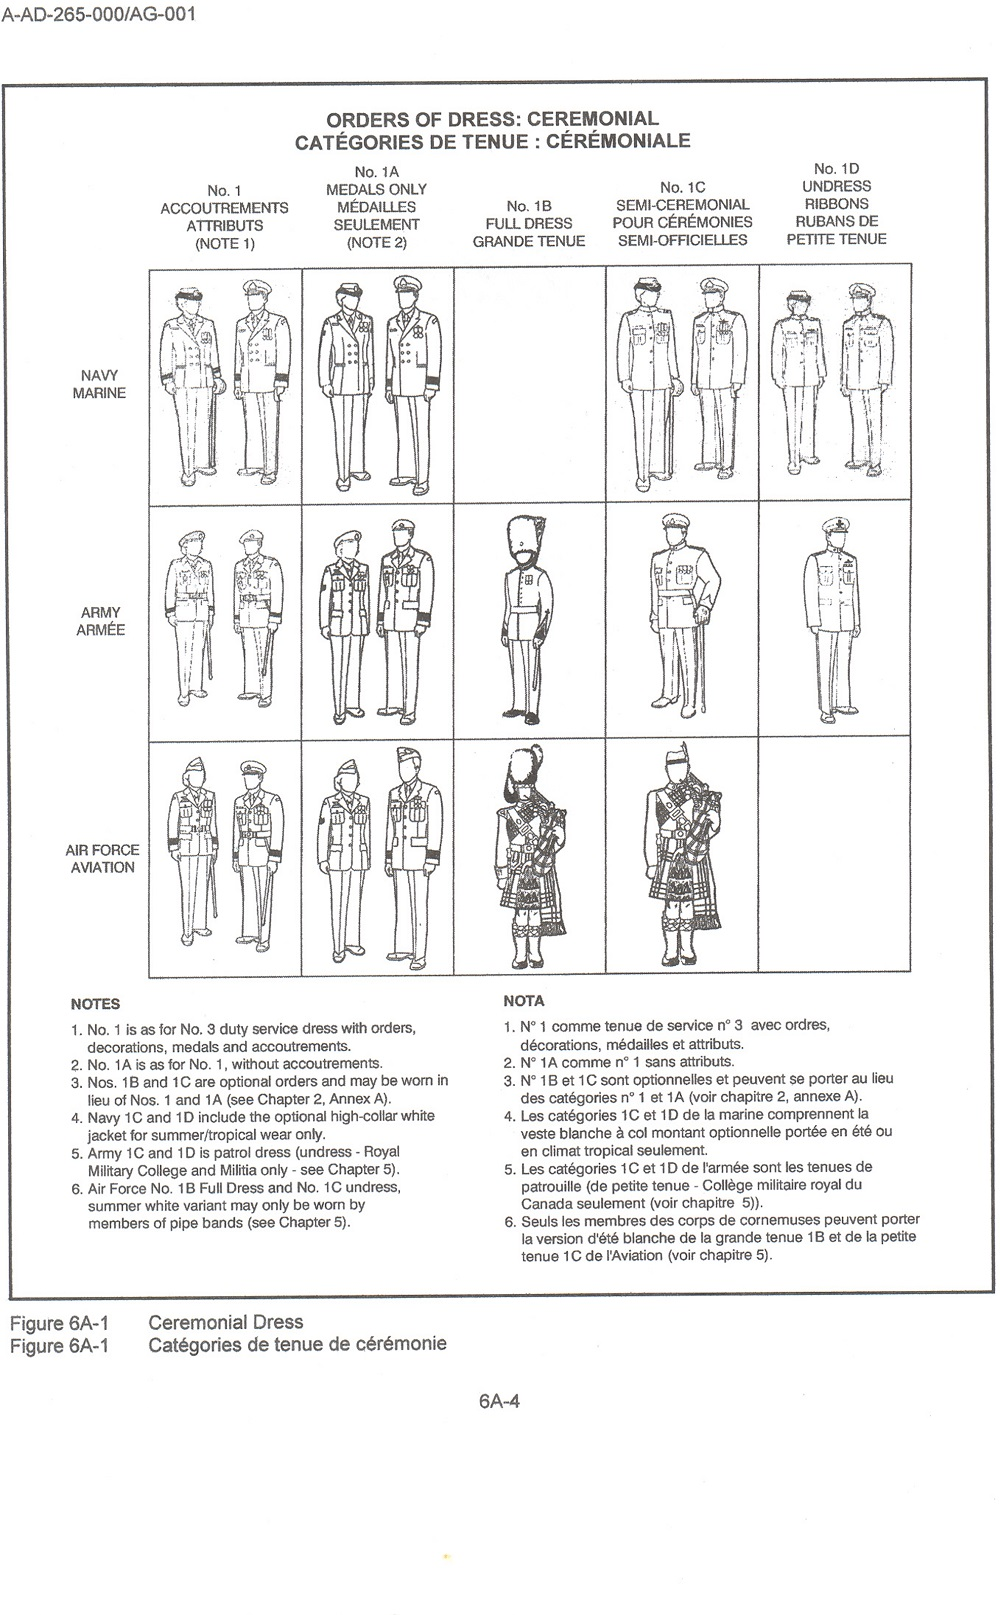 Order of Dress: Ceremonial